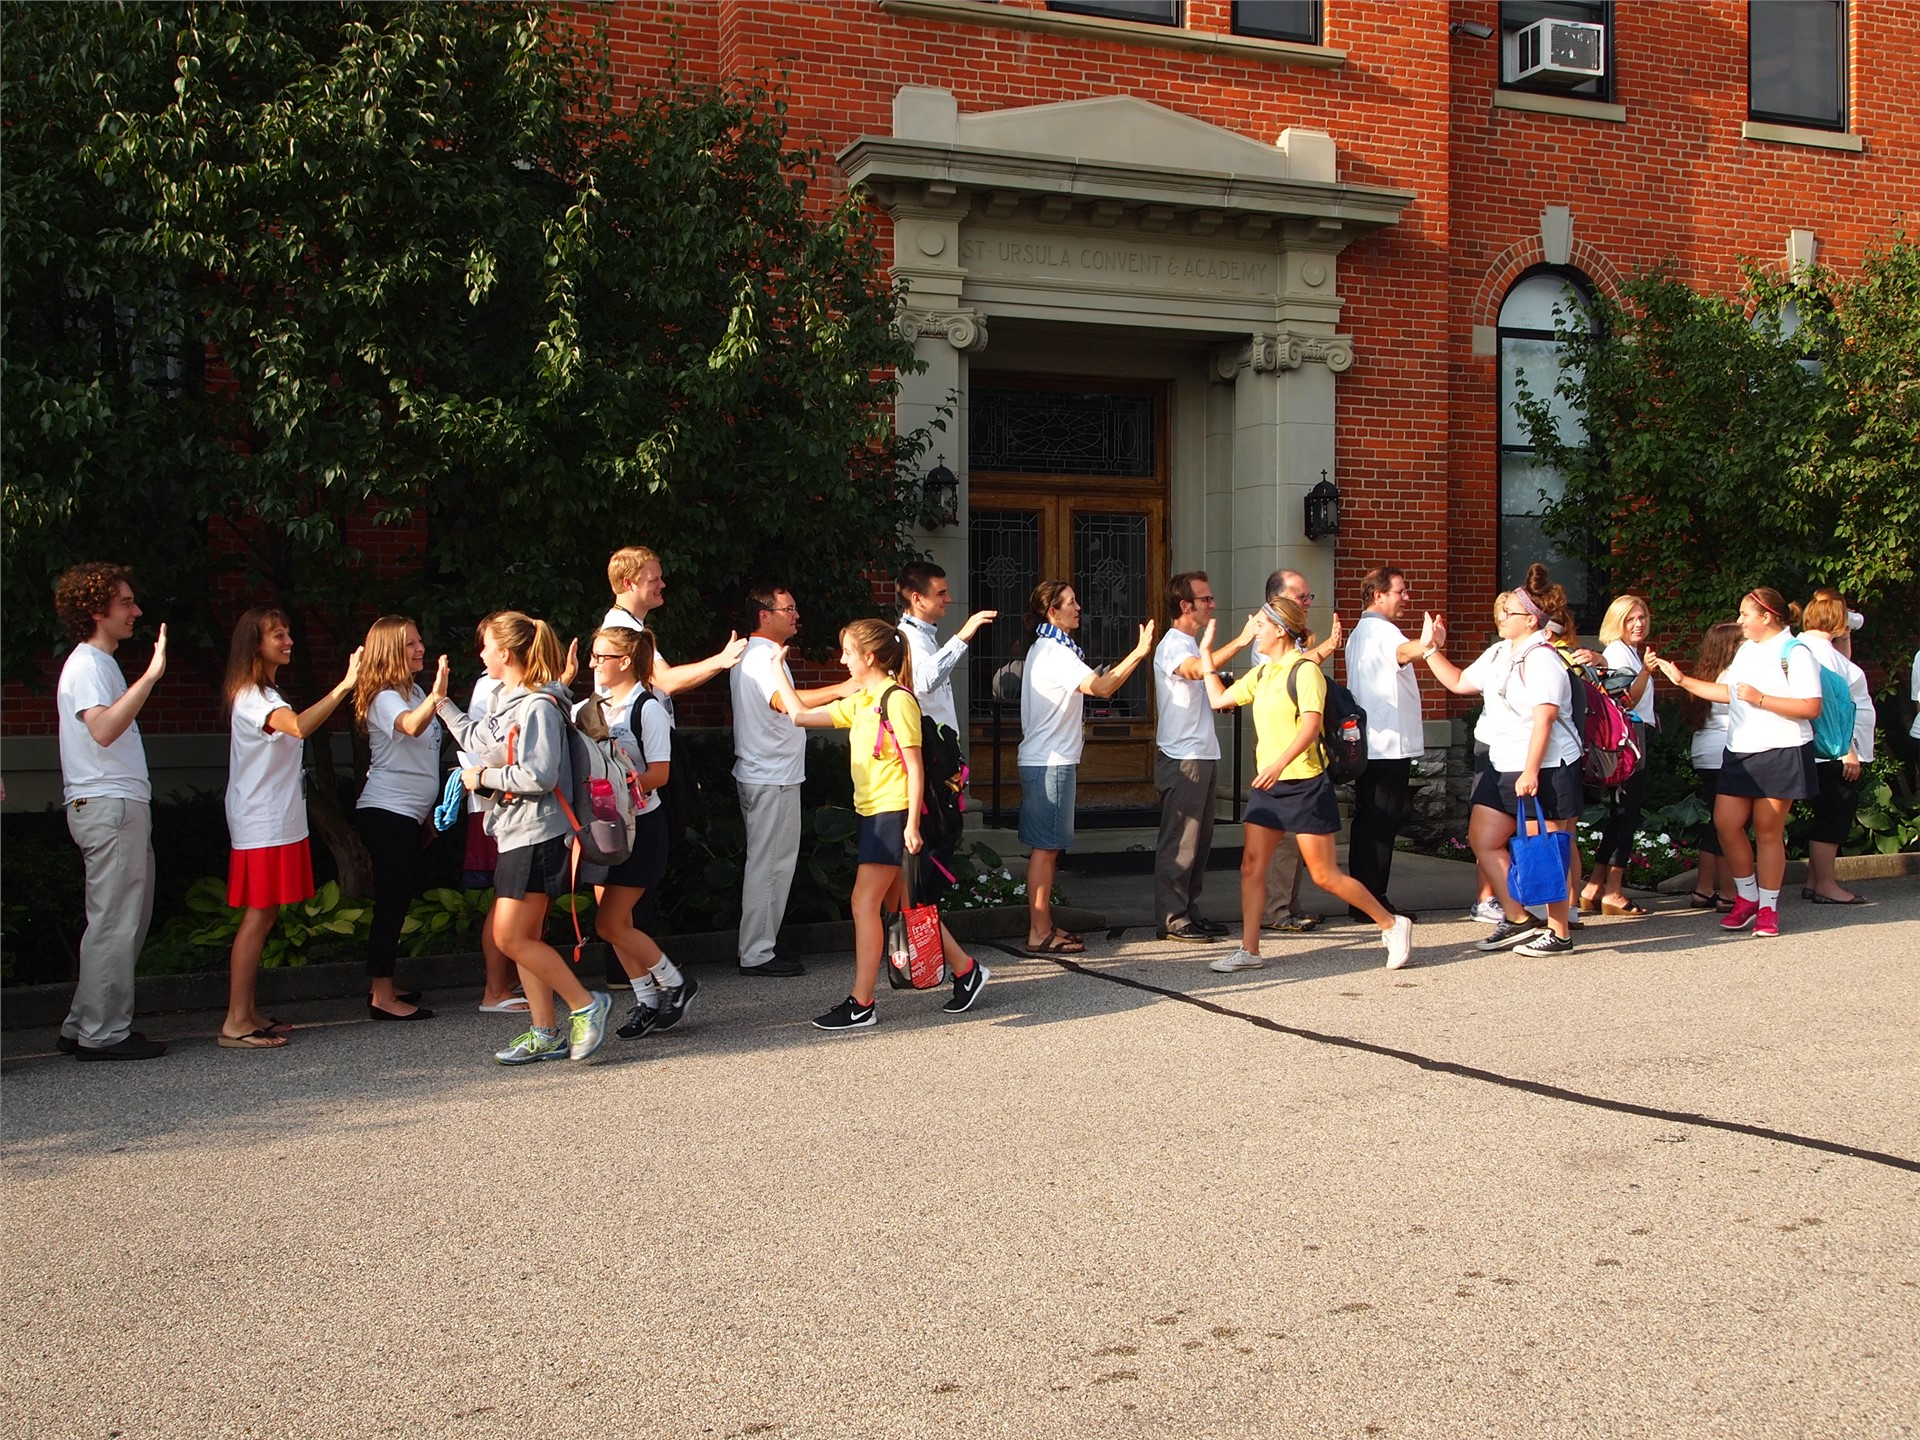 Faculty and Staff Welcome the Students with High Fives to a New School Year